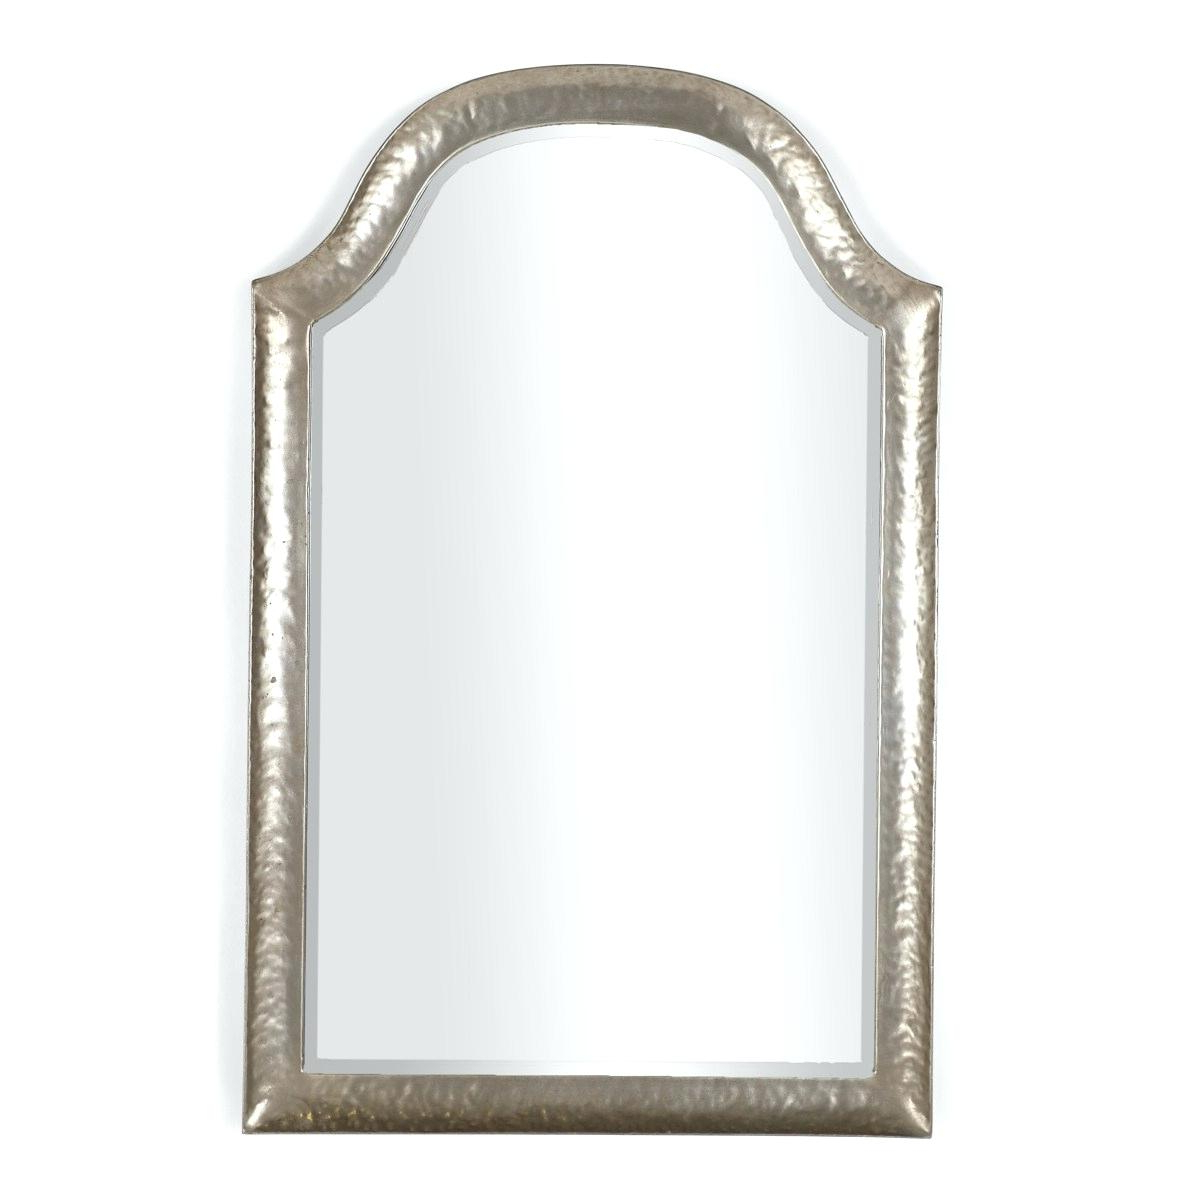 Studded Wall Mirrors Within Fashionable Cowhide Studded Wall Mirror – Fefisbaby (View 16 of 20)